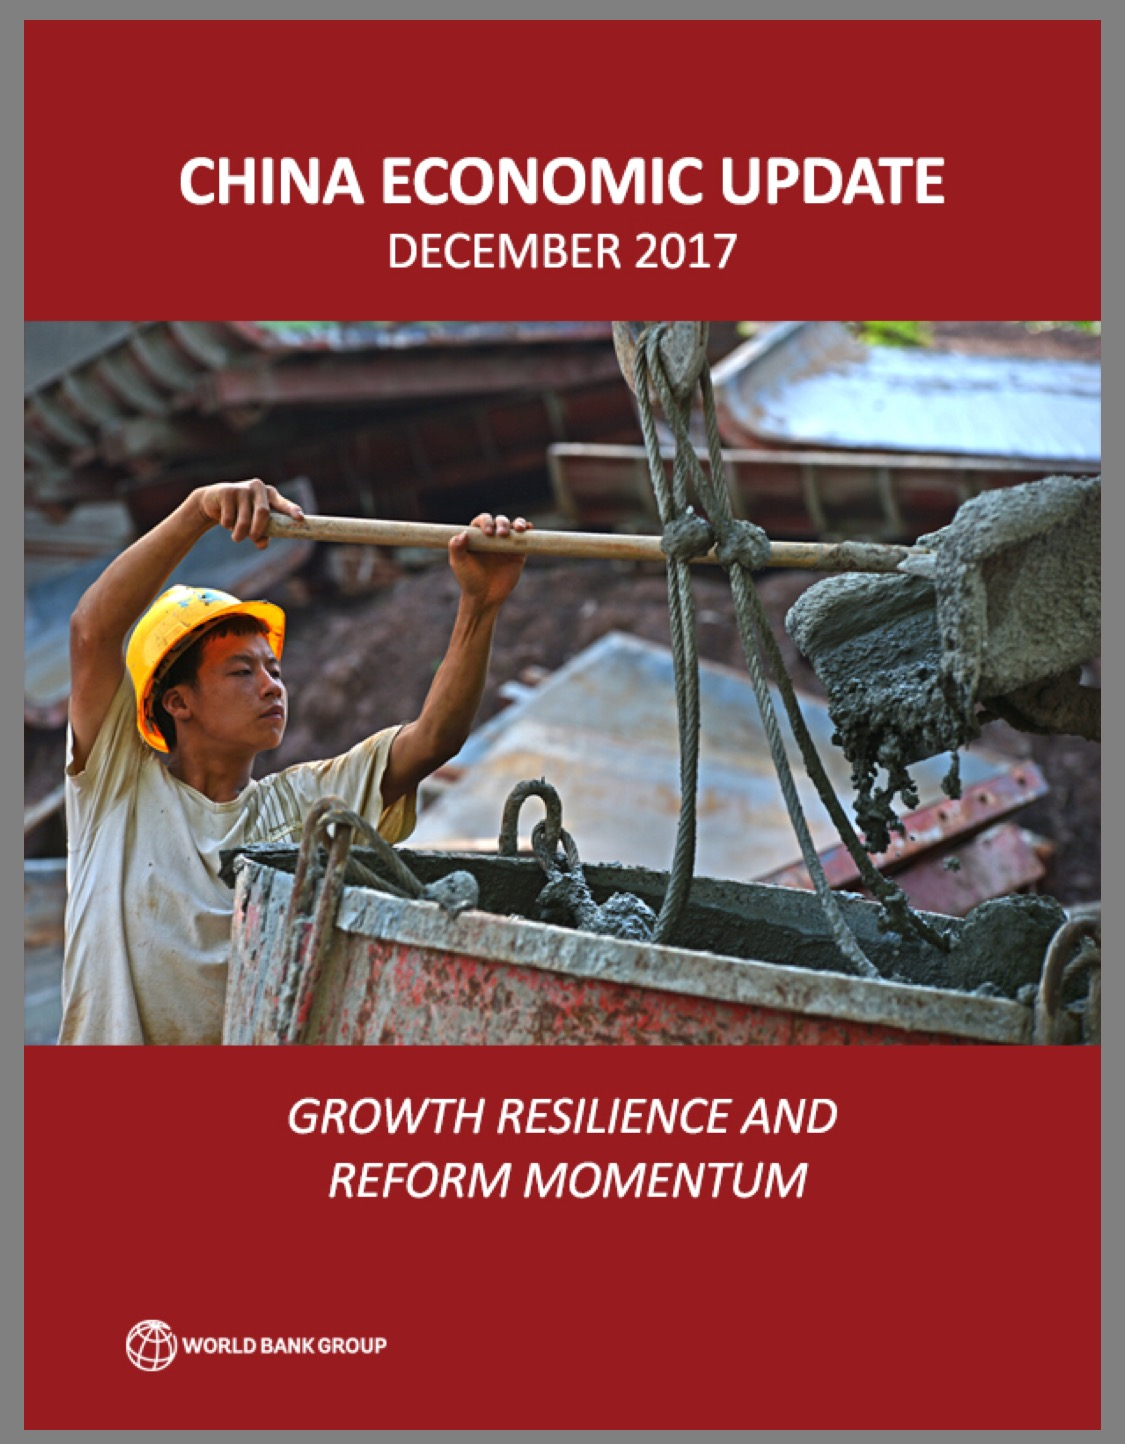 CHINA ECONOMIC UPDATE DECEMBER 2017